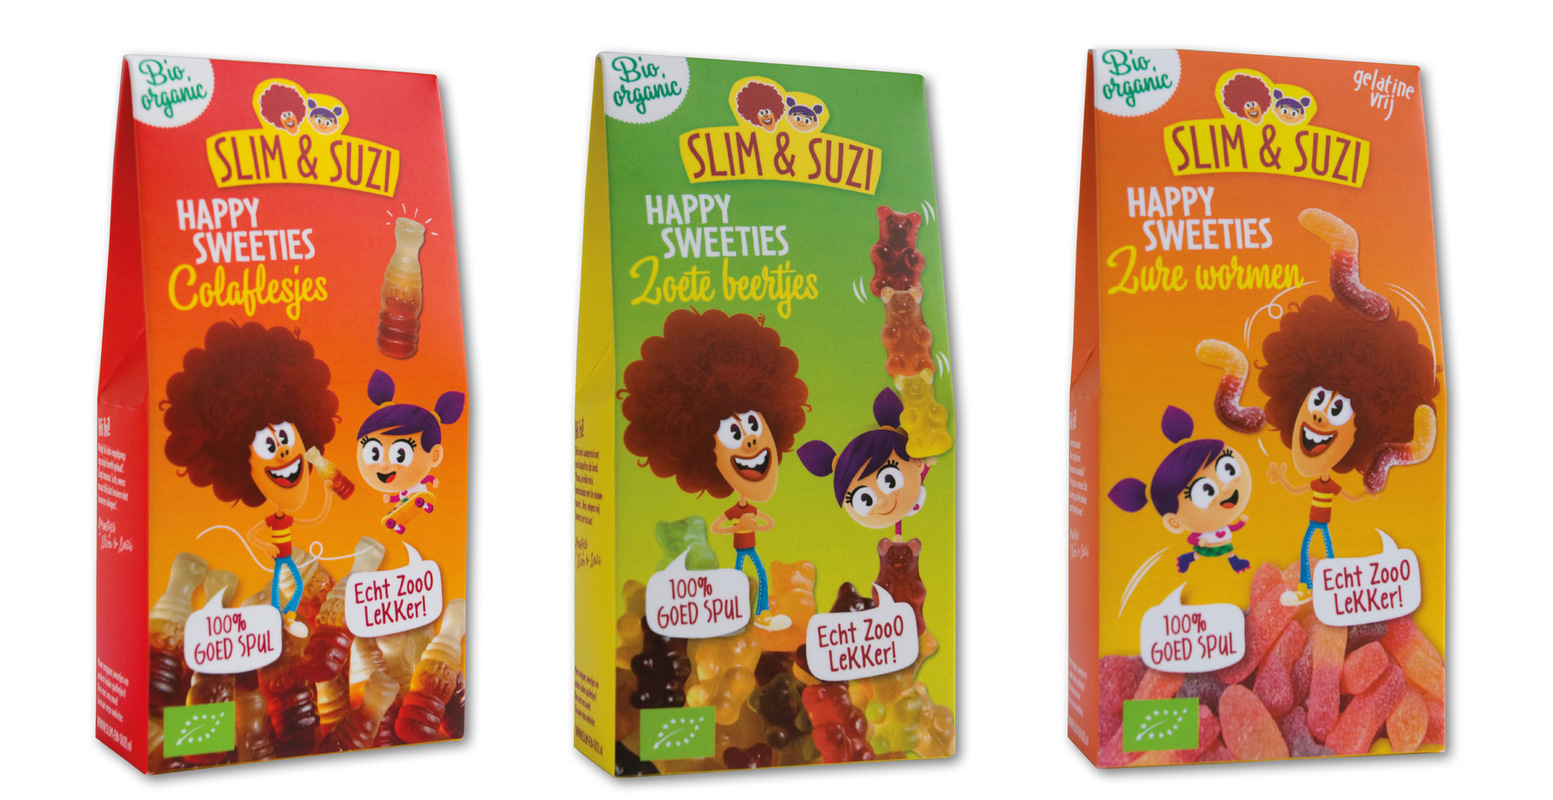 Nicoline Caris, artdirection and graphic design - Ontwikkeling characters Slim&Suzi en packaging.